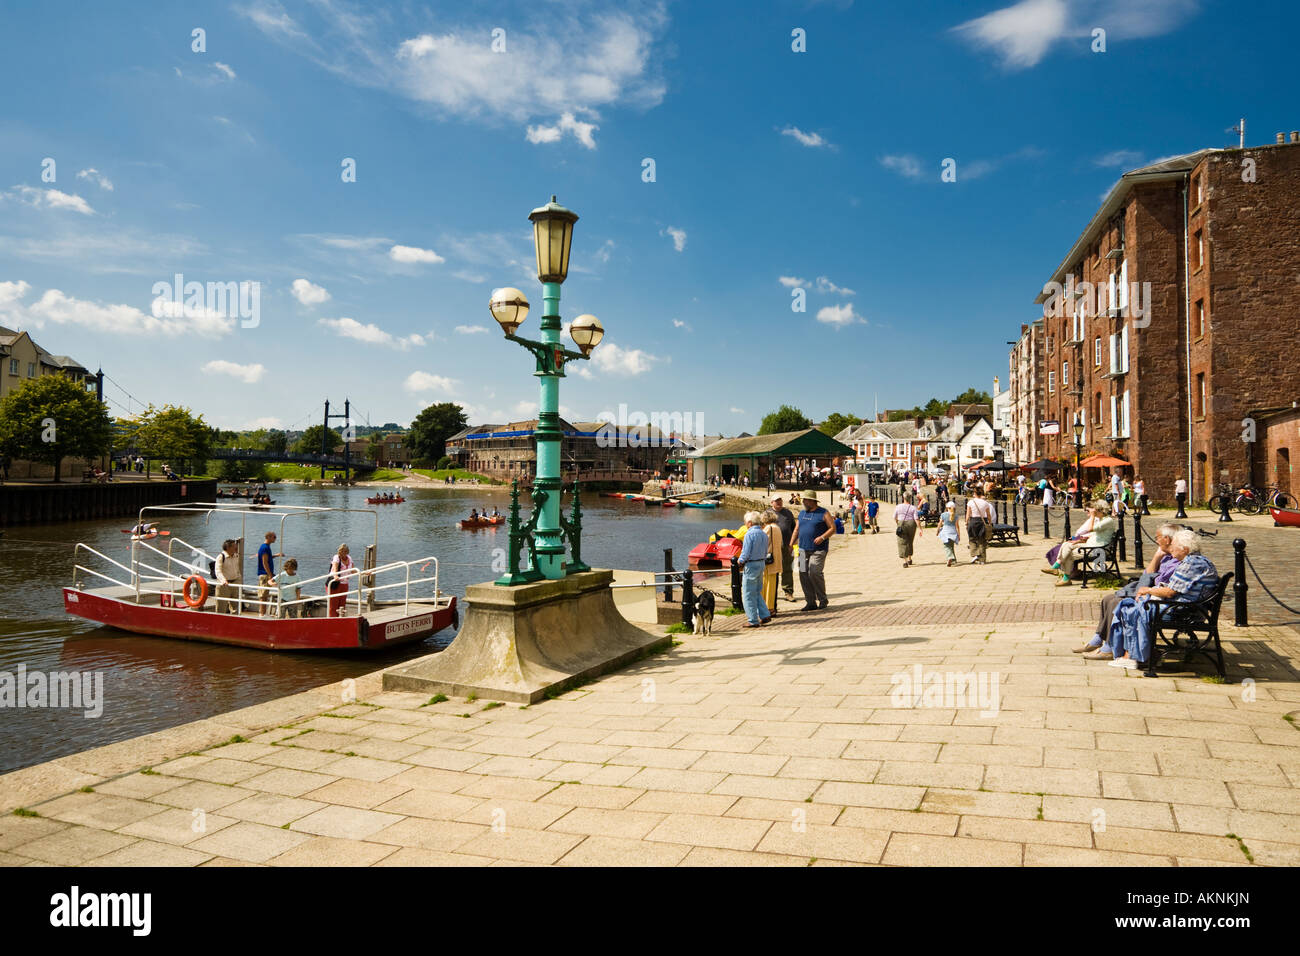 Exeter quay - Butts Ferry crossing the River Exe, Devon UK in summer - Stock Image